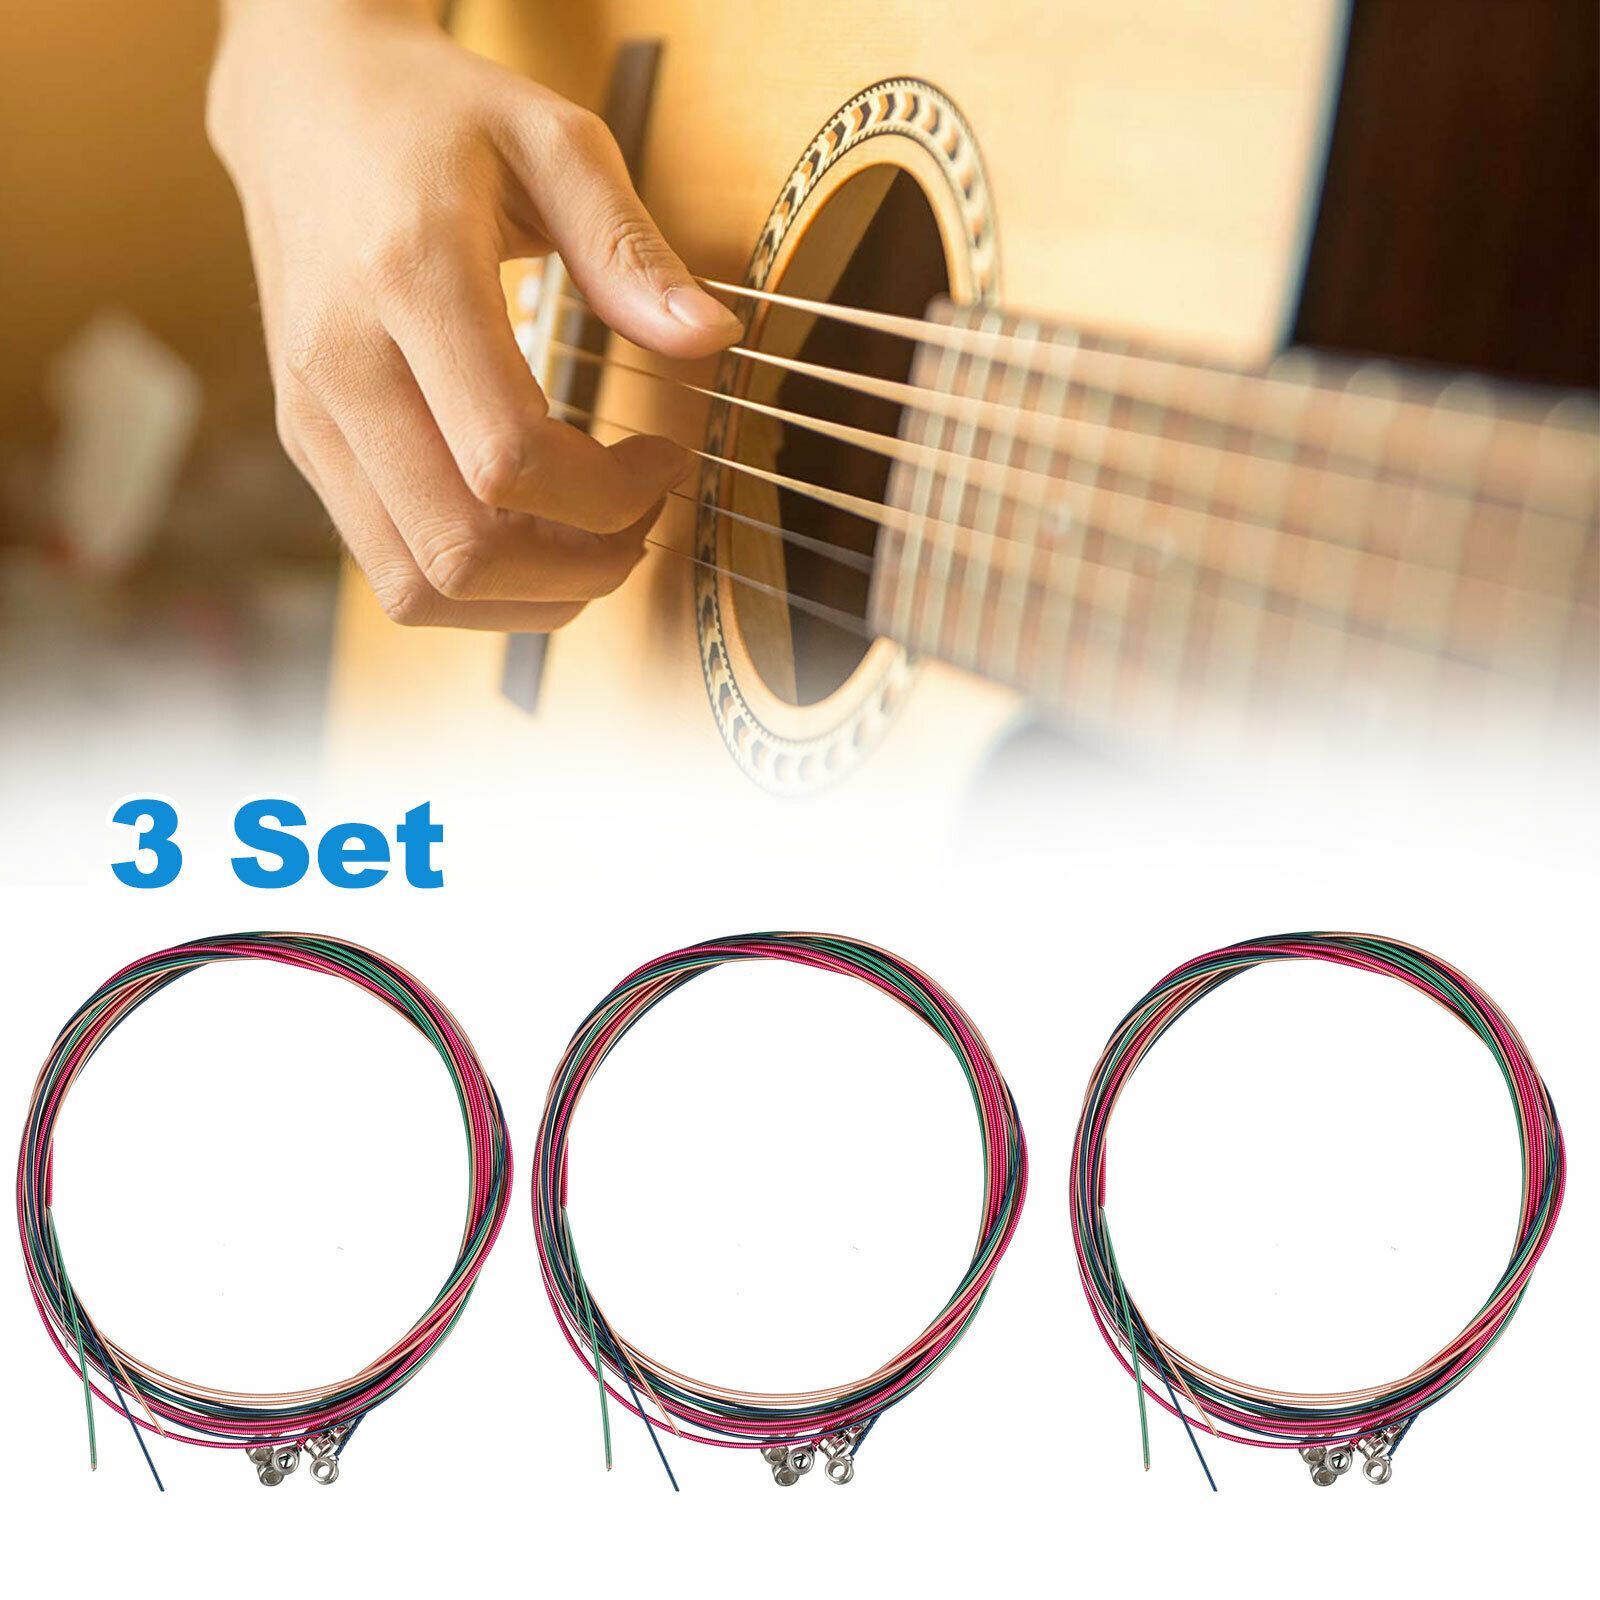 3-x-set-of-guitar-strings-replacement-steel-string-for-acoustic-guitar